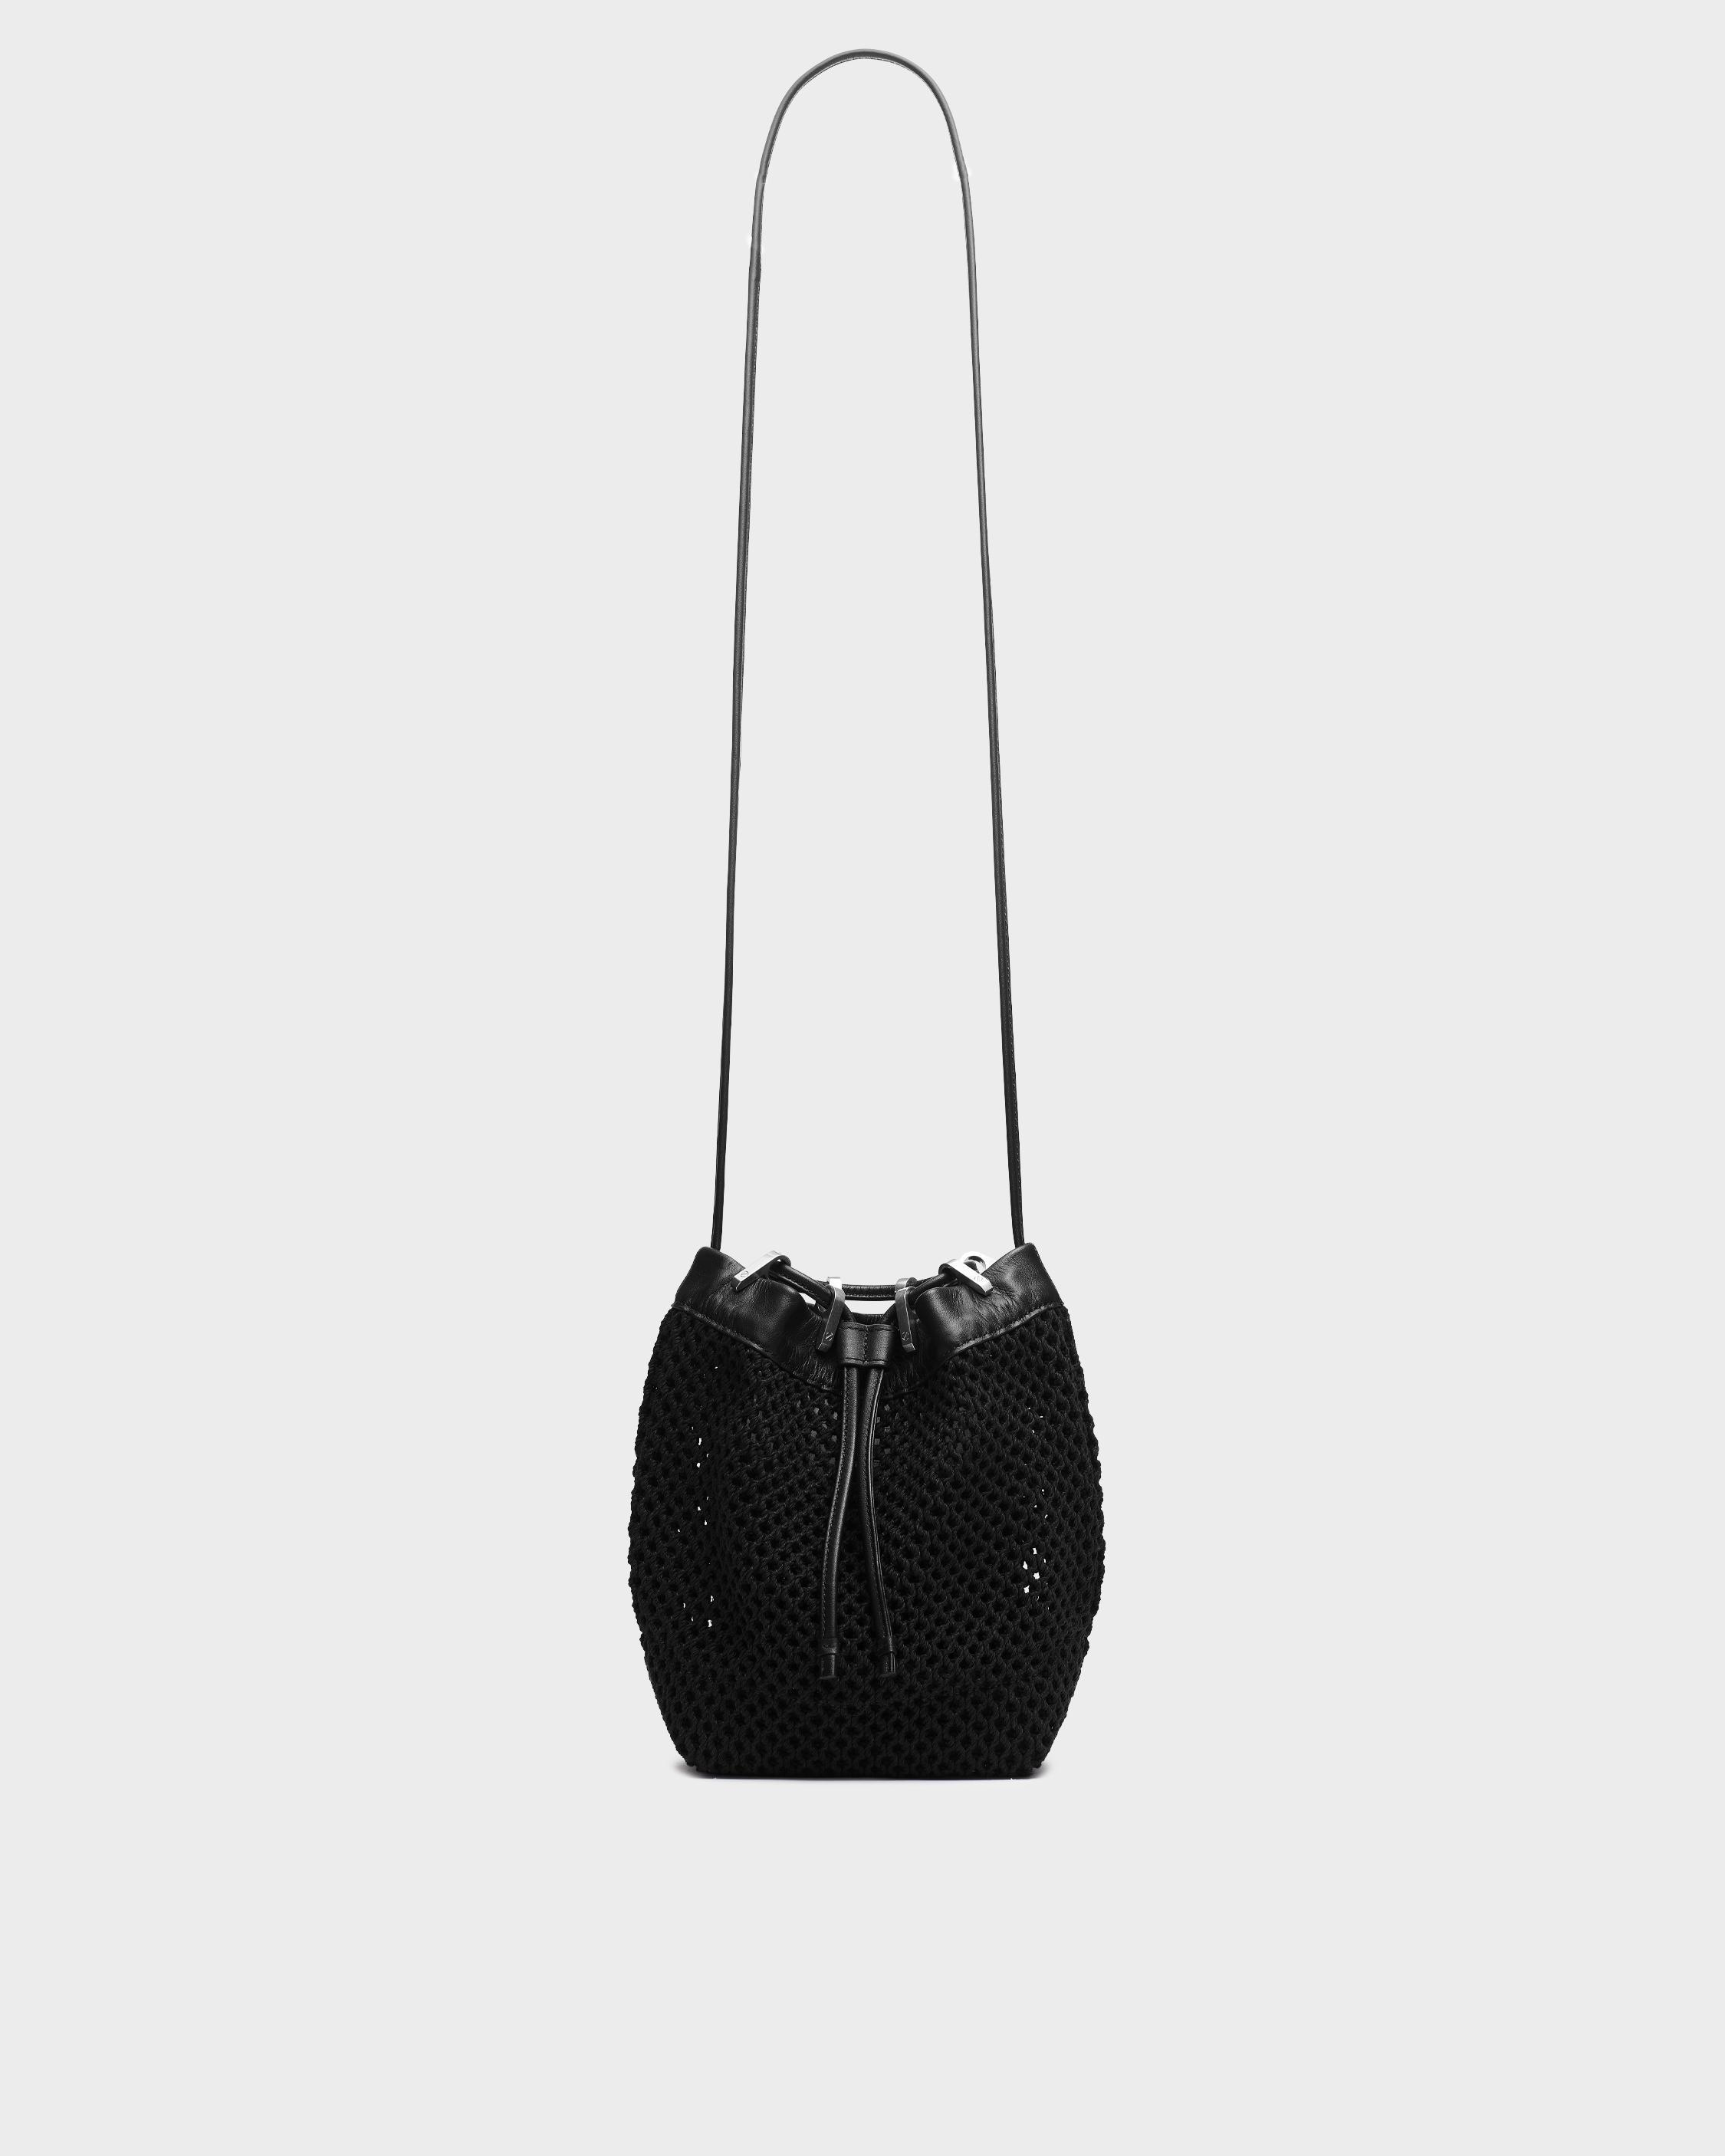 Summer dayton drawstring bag - leather and recycled materials